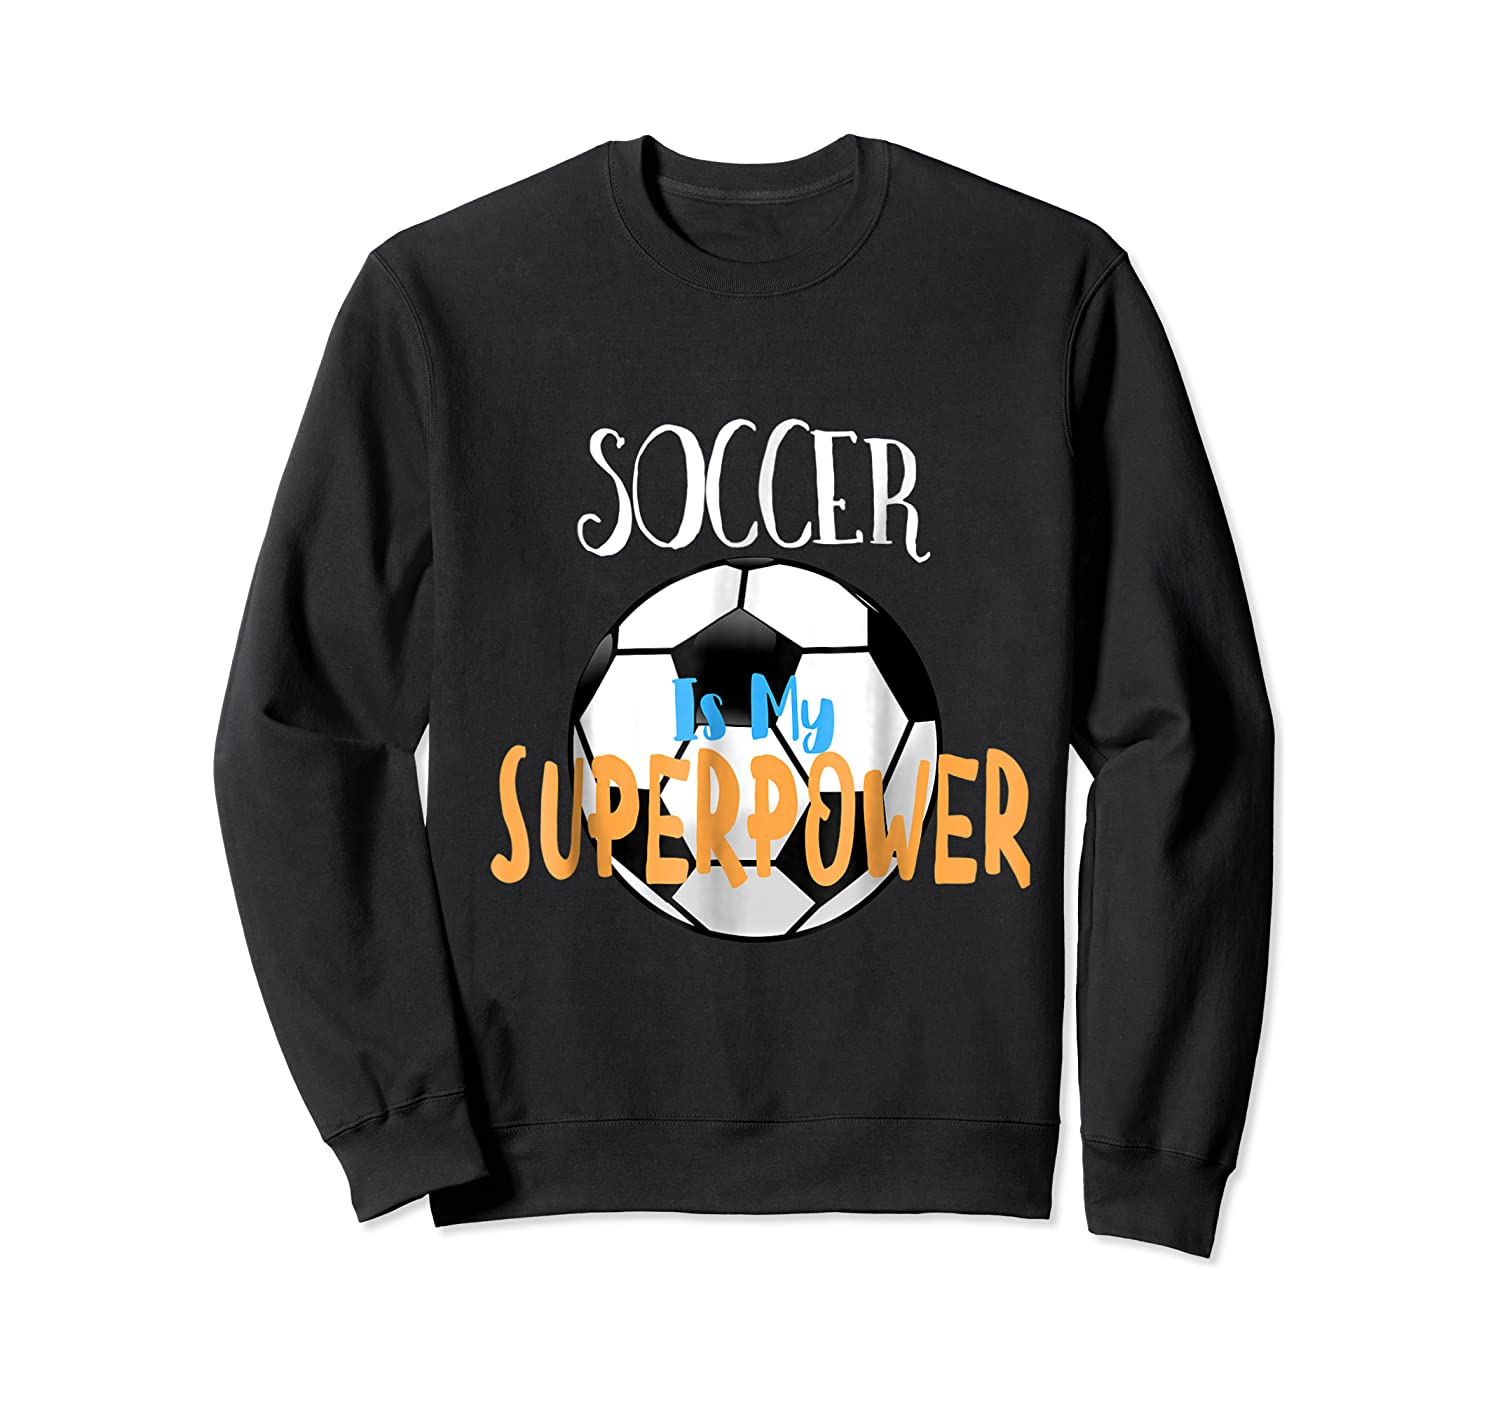 Soccer Is My Superpower T-shirt Crewneck Sweater